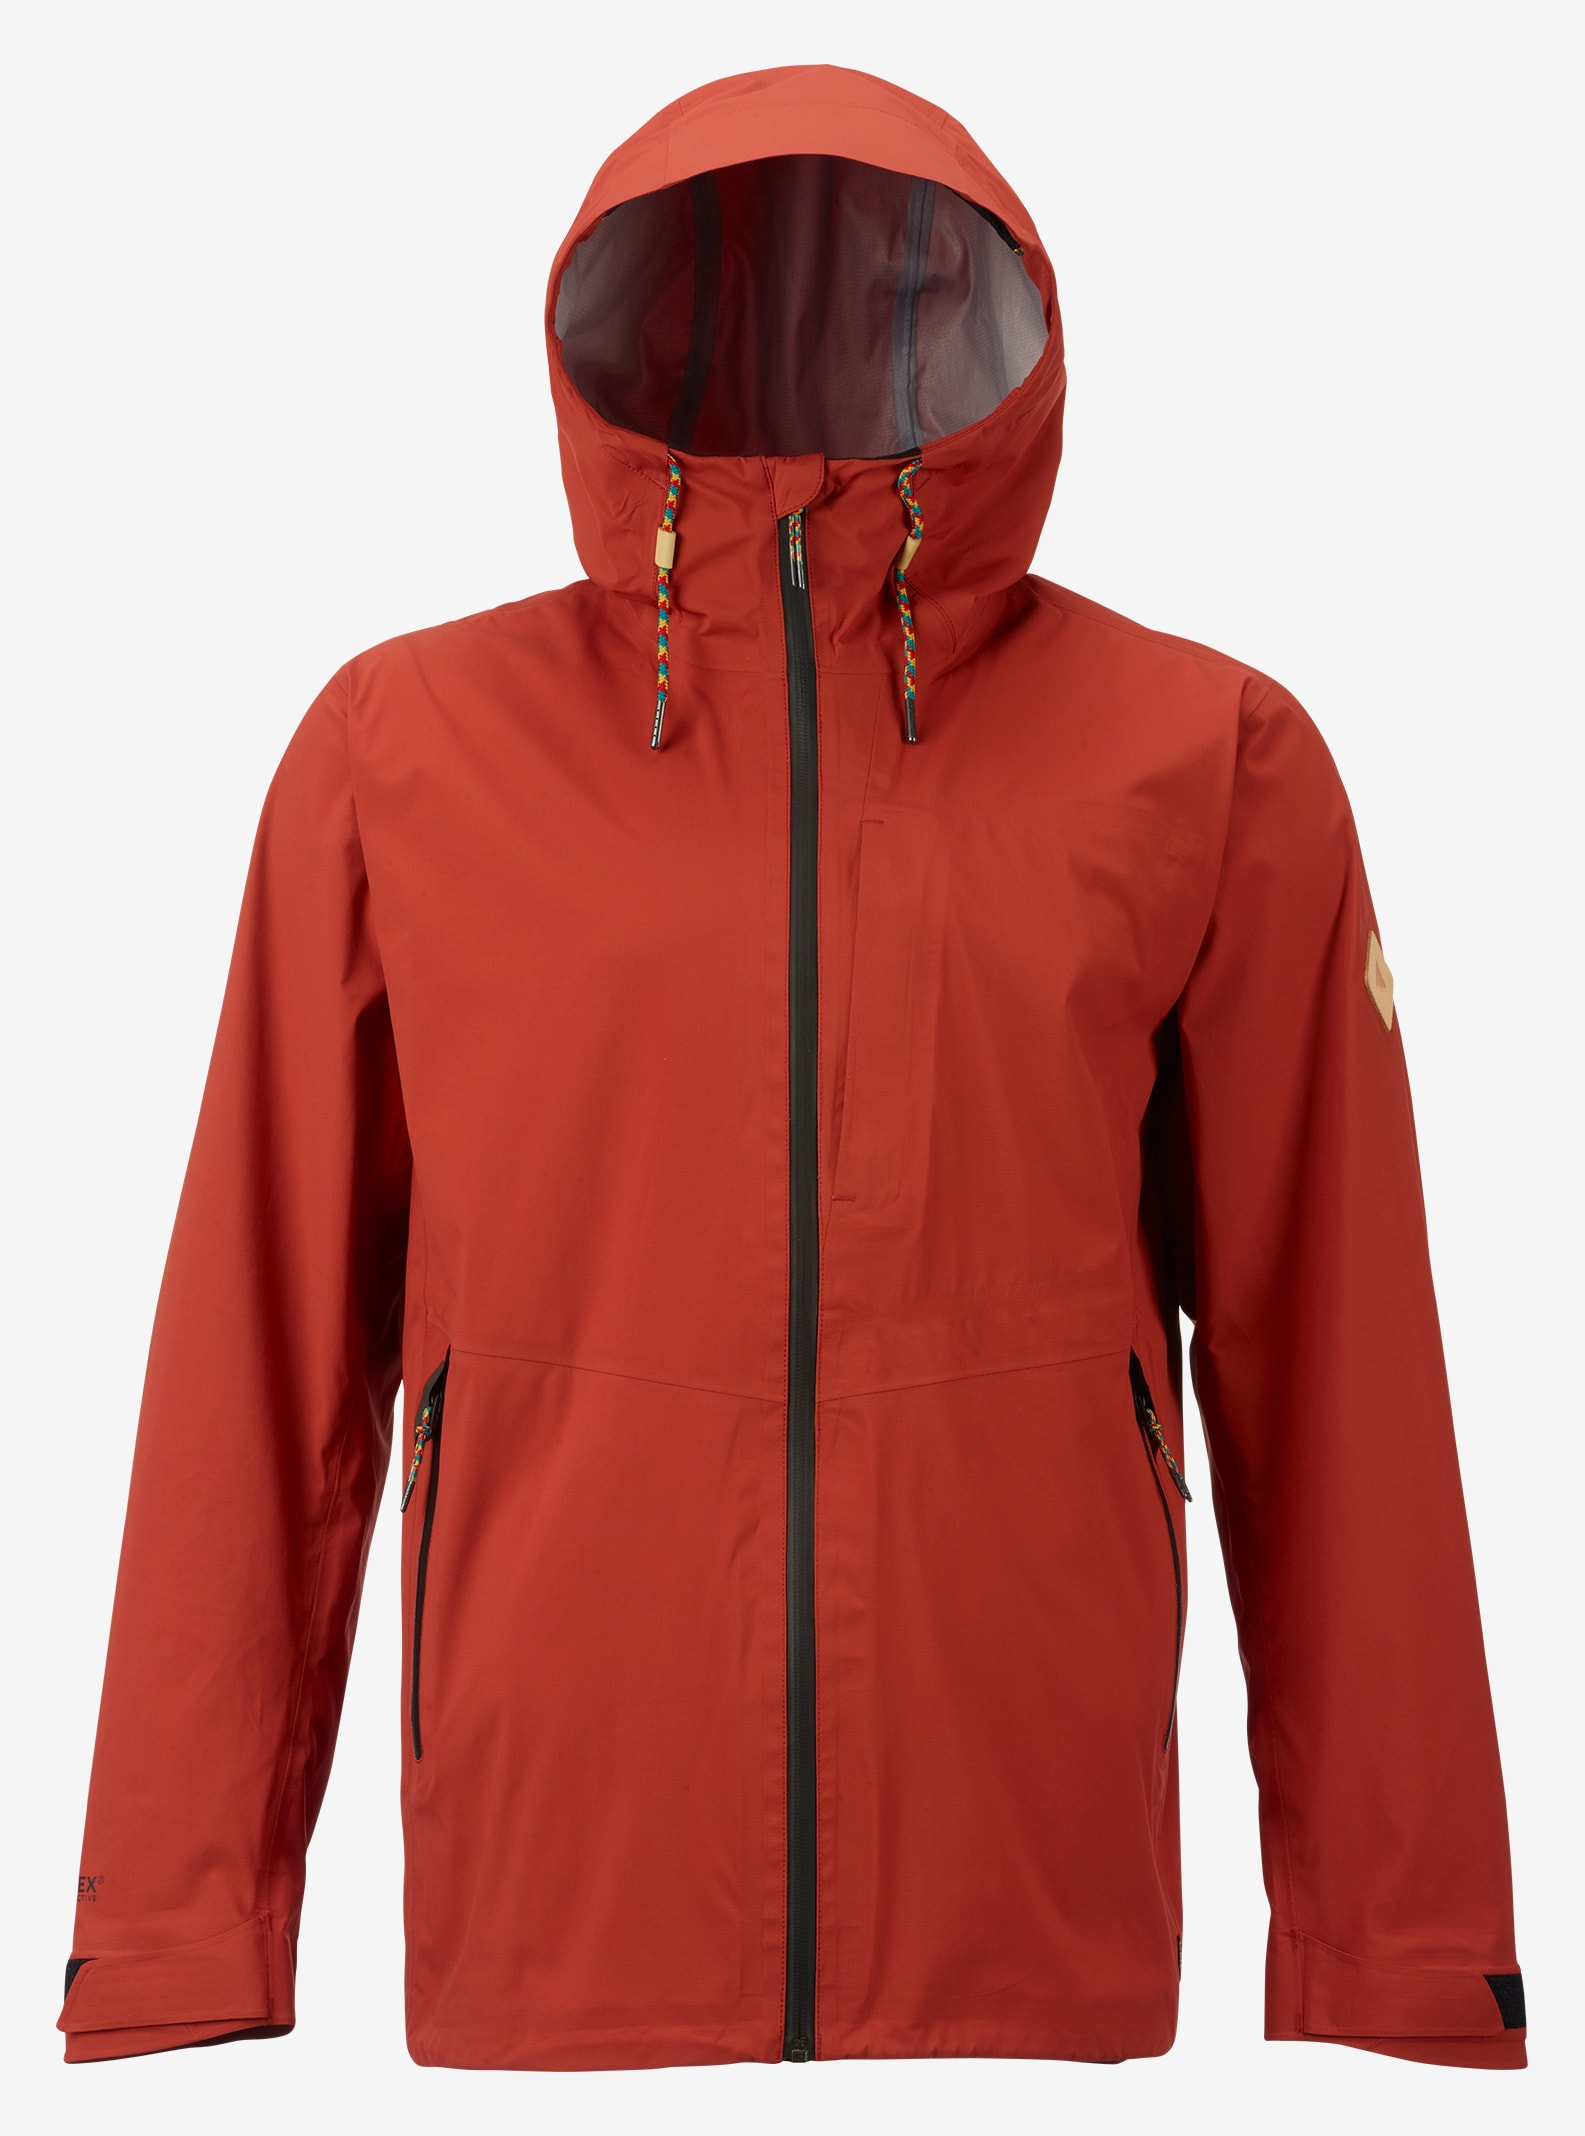 Burton GORE-TEX® 3L Sterling Rain Jacket shown in Tandori